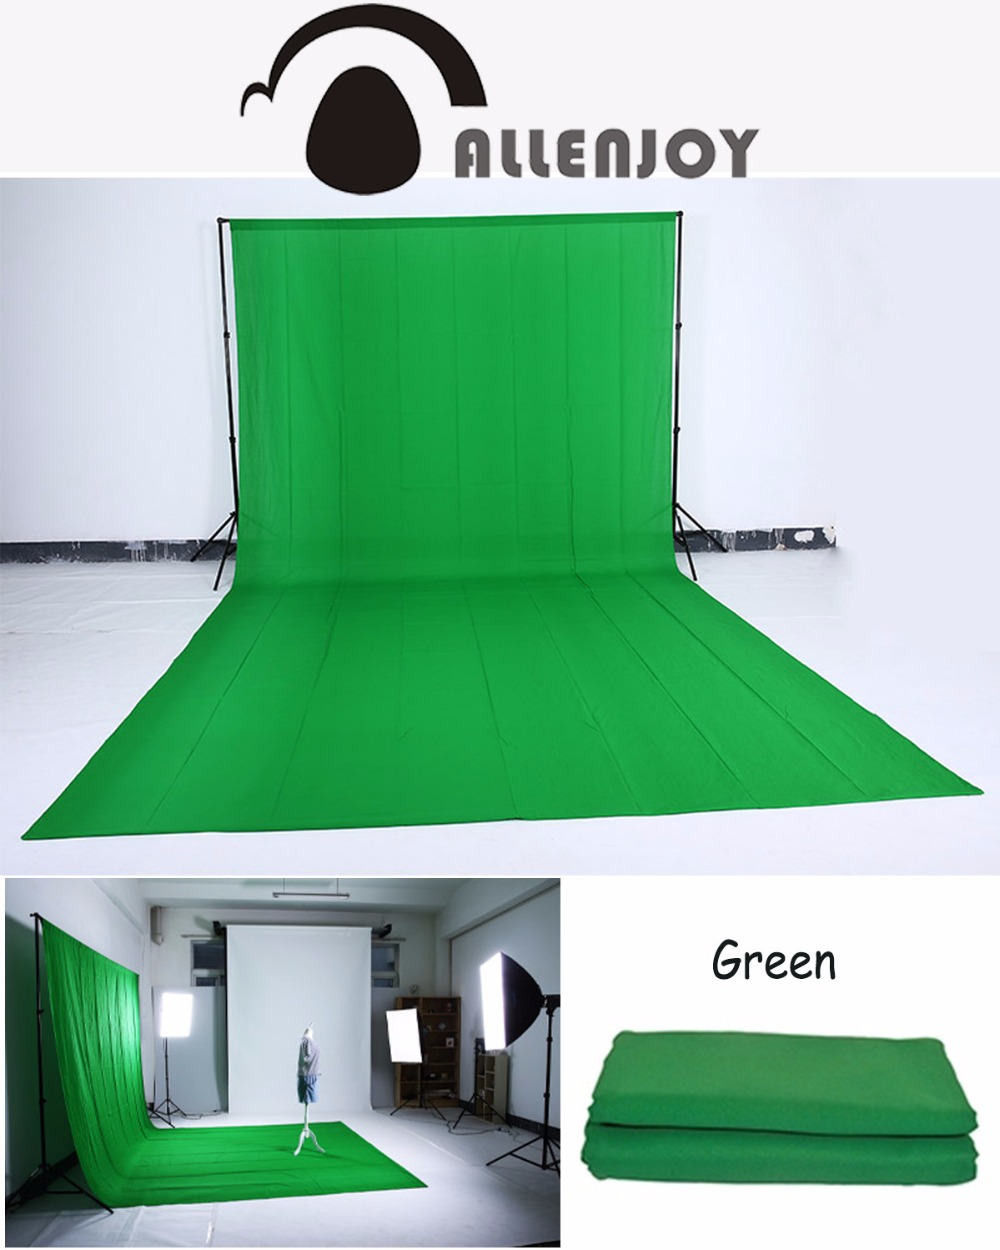 Allenjoy Hromakey Green screen background chromakey muslin backdrop for video Customized Size Professional Photo Lighting Studio photo lighting studio chromakey green screen muslin background backdrop 3x6m